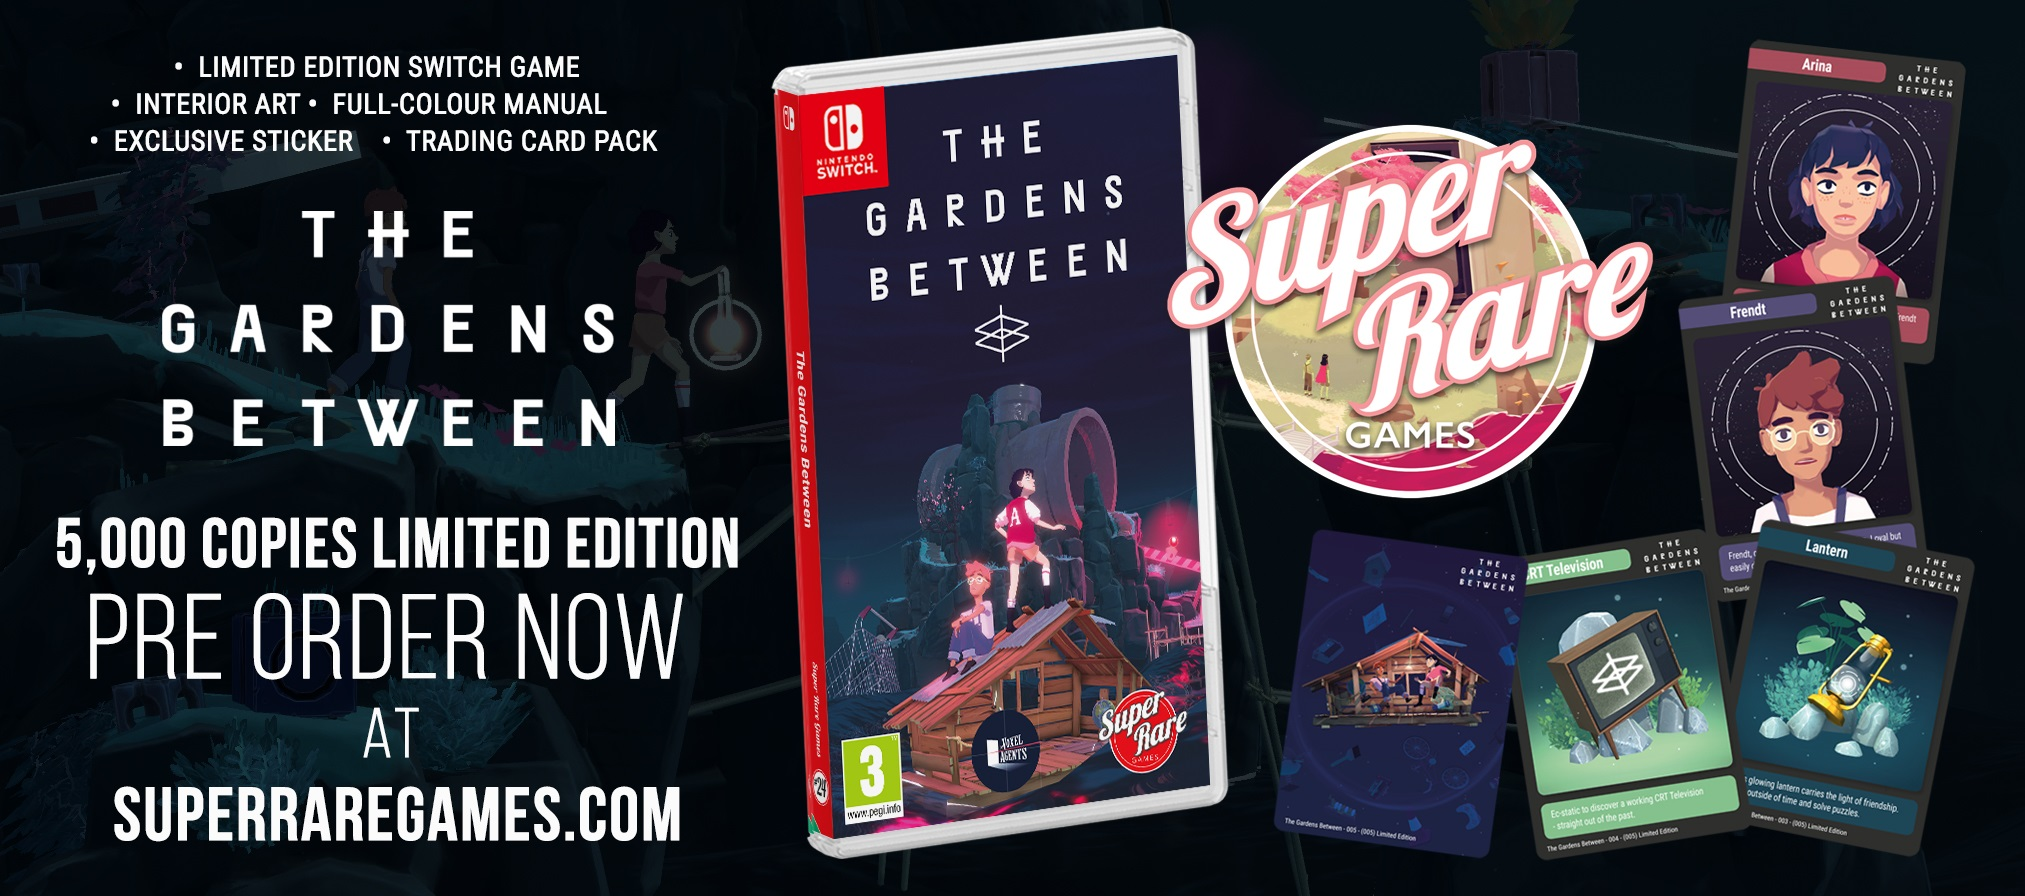 Enter into Dtoid Contest to win a copy of physical edition of The Gardens Between for Nintendo Switch from Super Rare Games. Giveaway Image